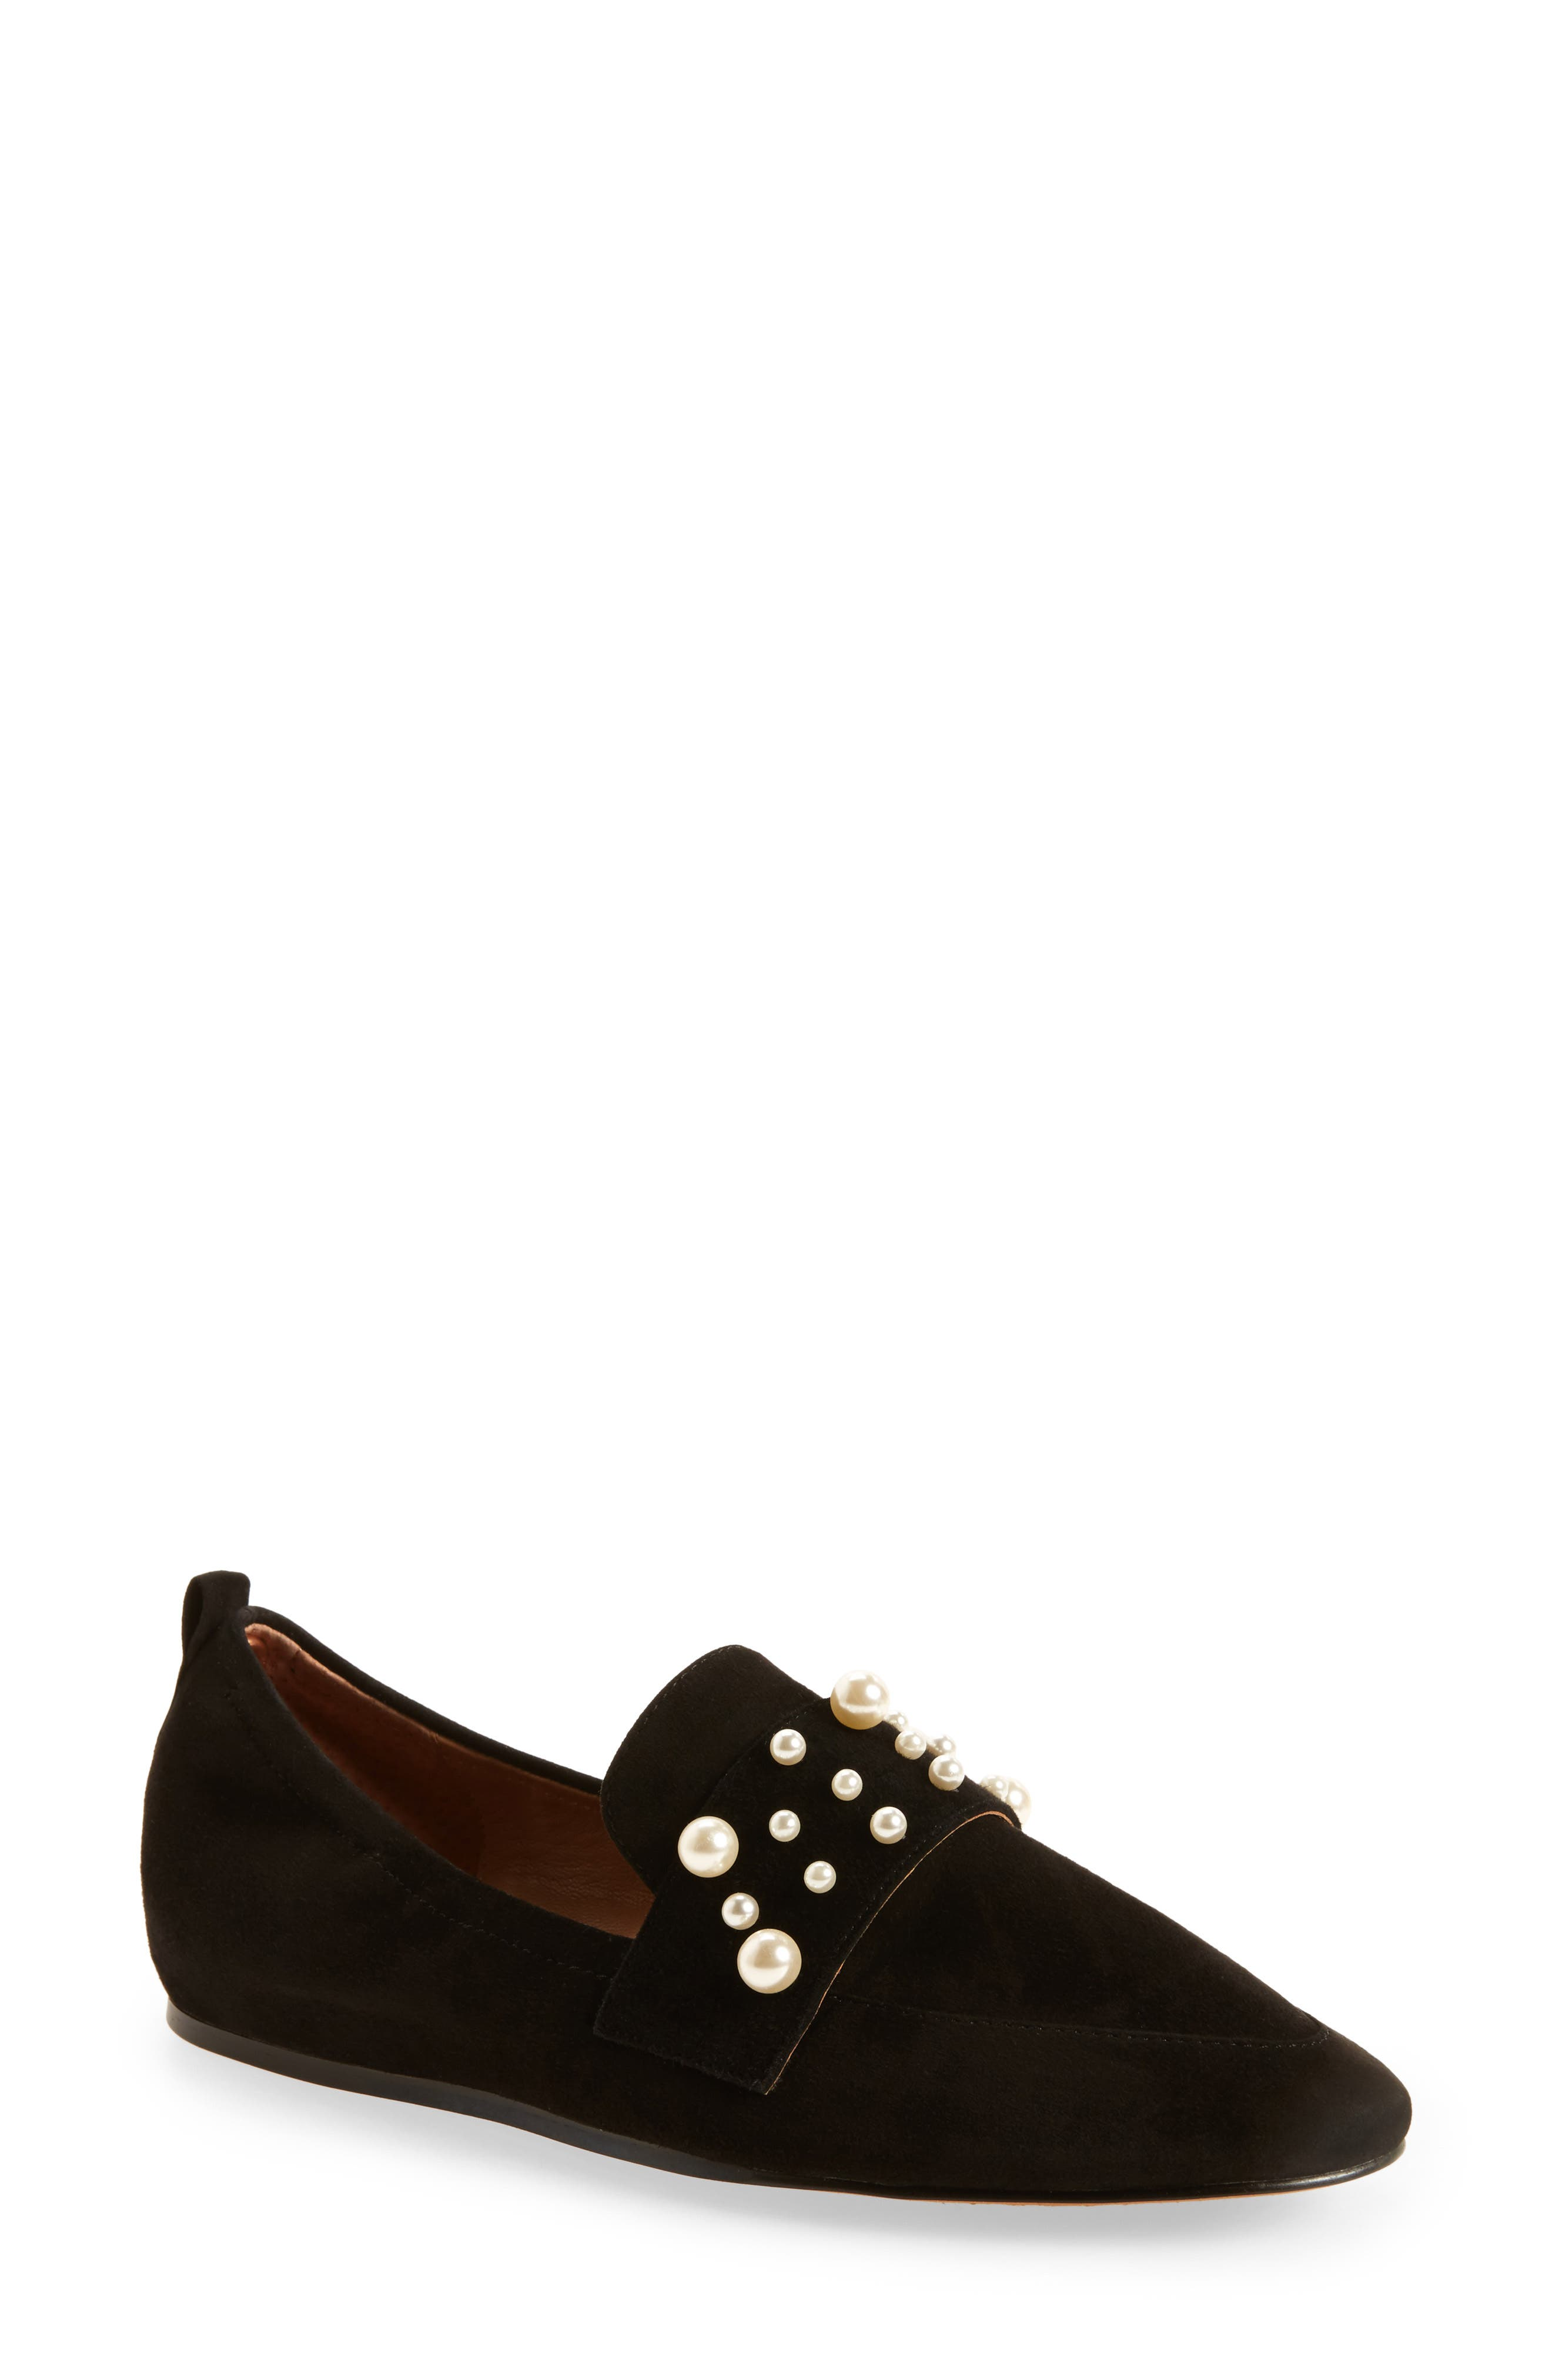 Milly Loafer,                             Main thumbnail 1, color,